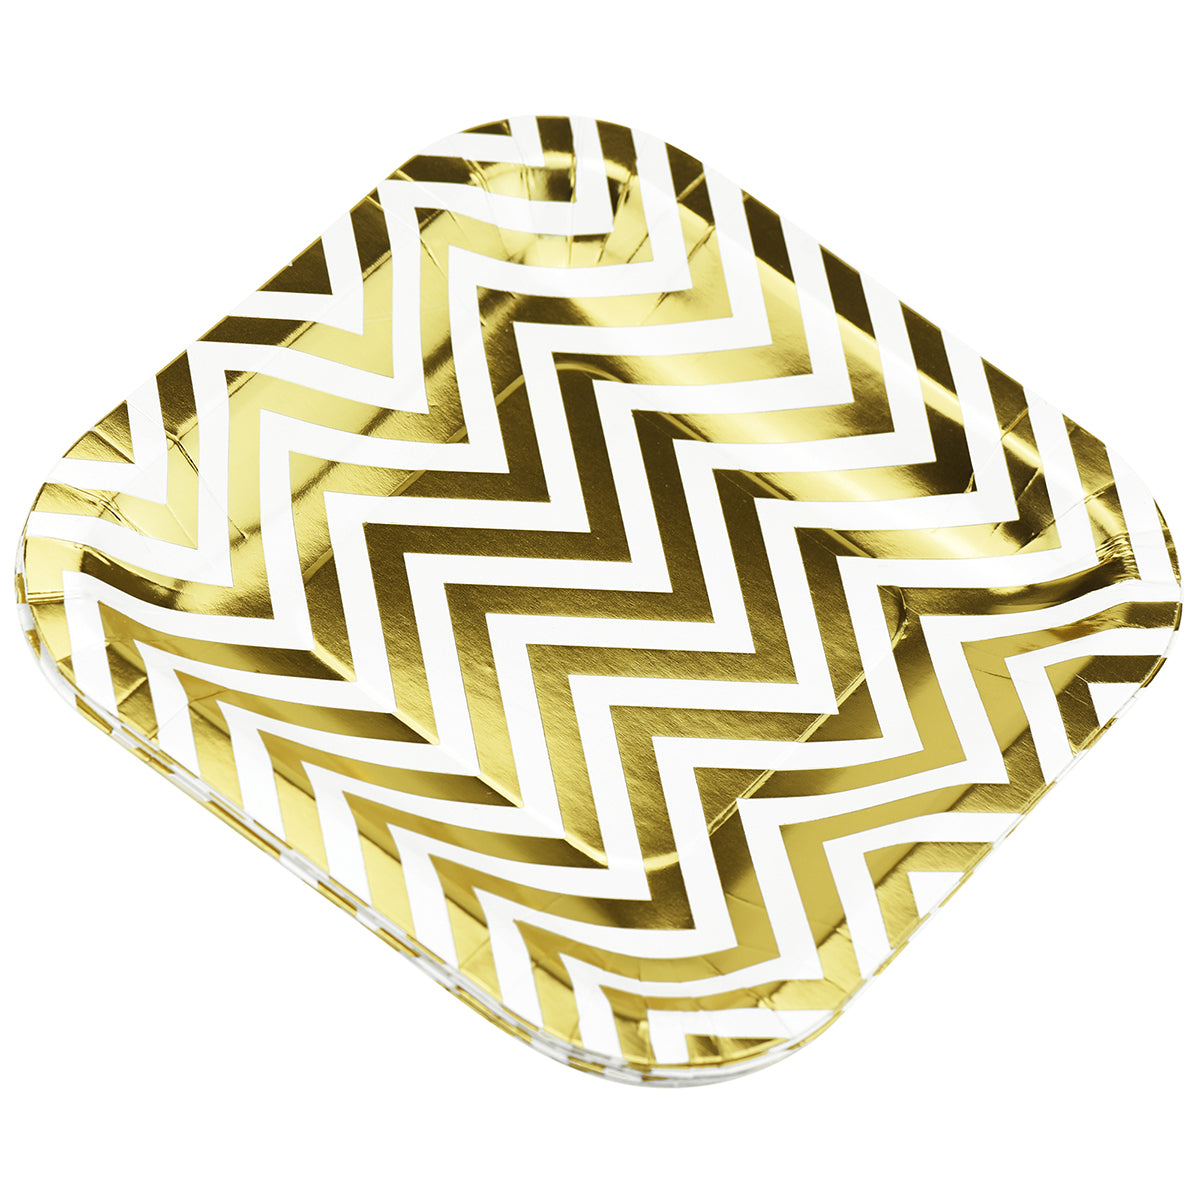 16 stacked white and gold zigzag design square paper plates display with a white background